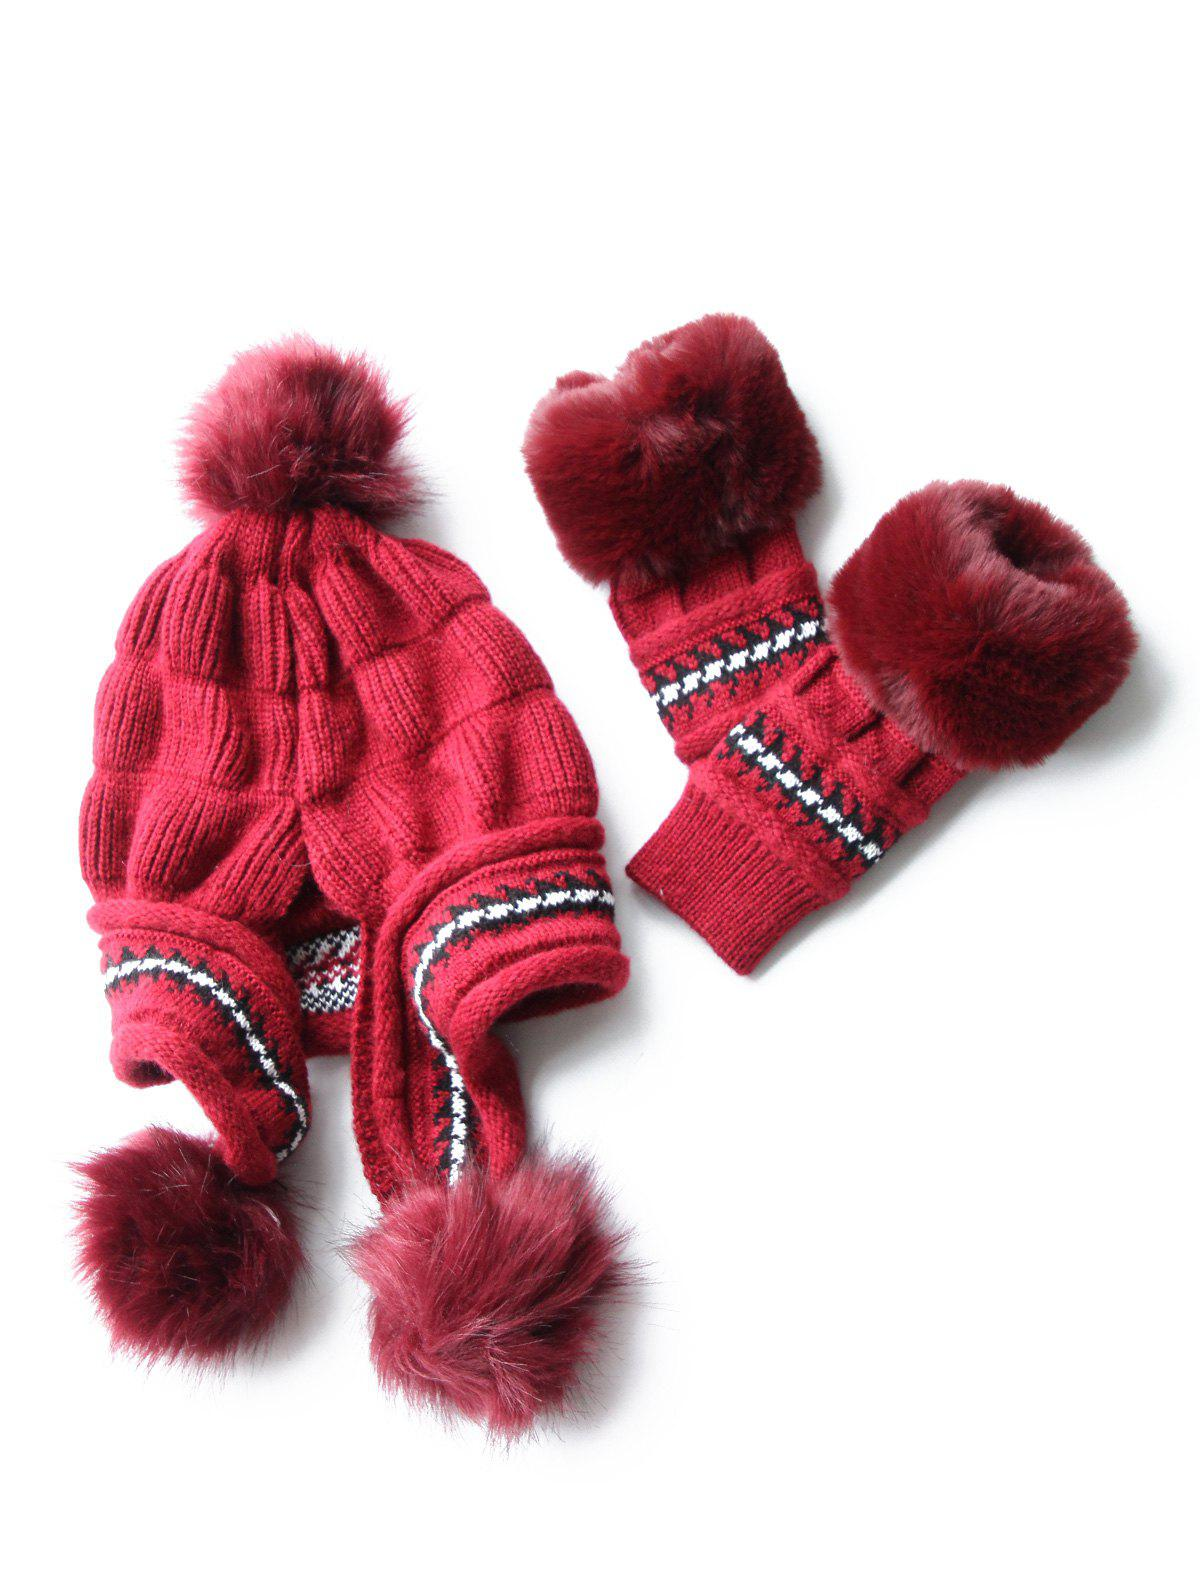 Affordable Stylish Winter Knitted Hat Gloves Set